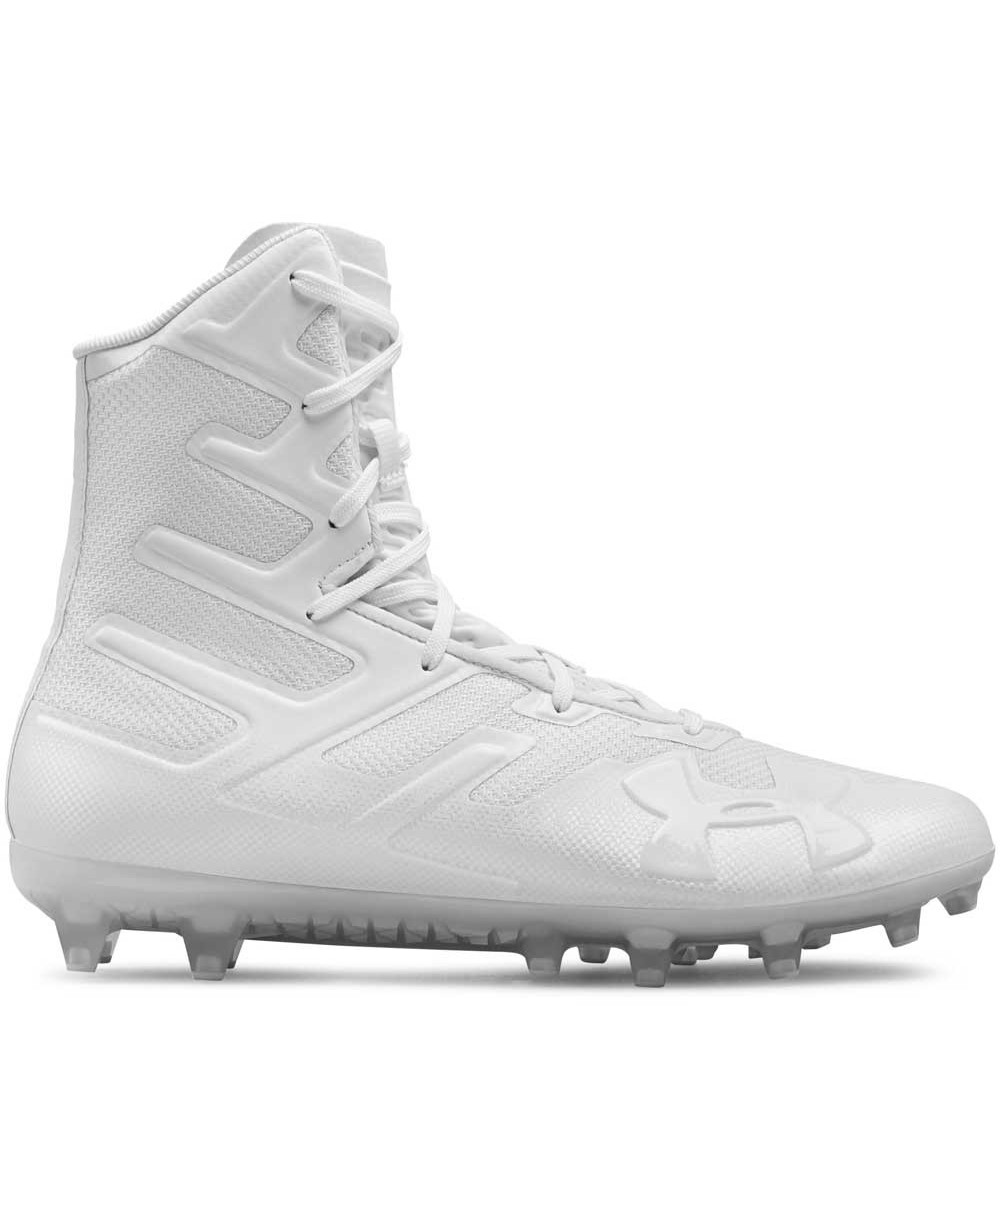 84ba07af8 Under Armour Men s Highlight MC American Football Cleats White